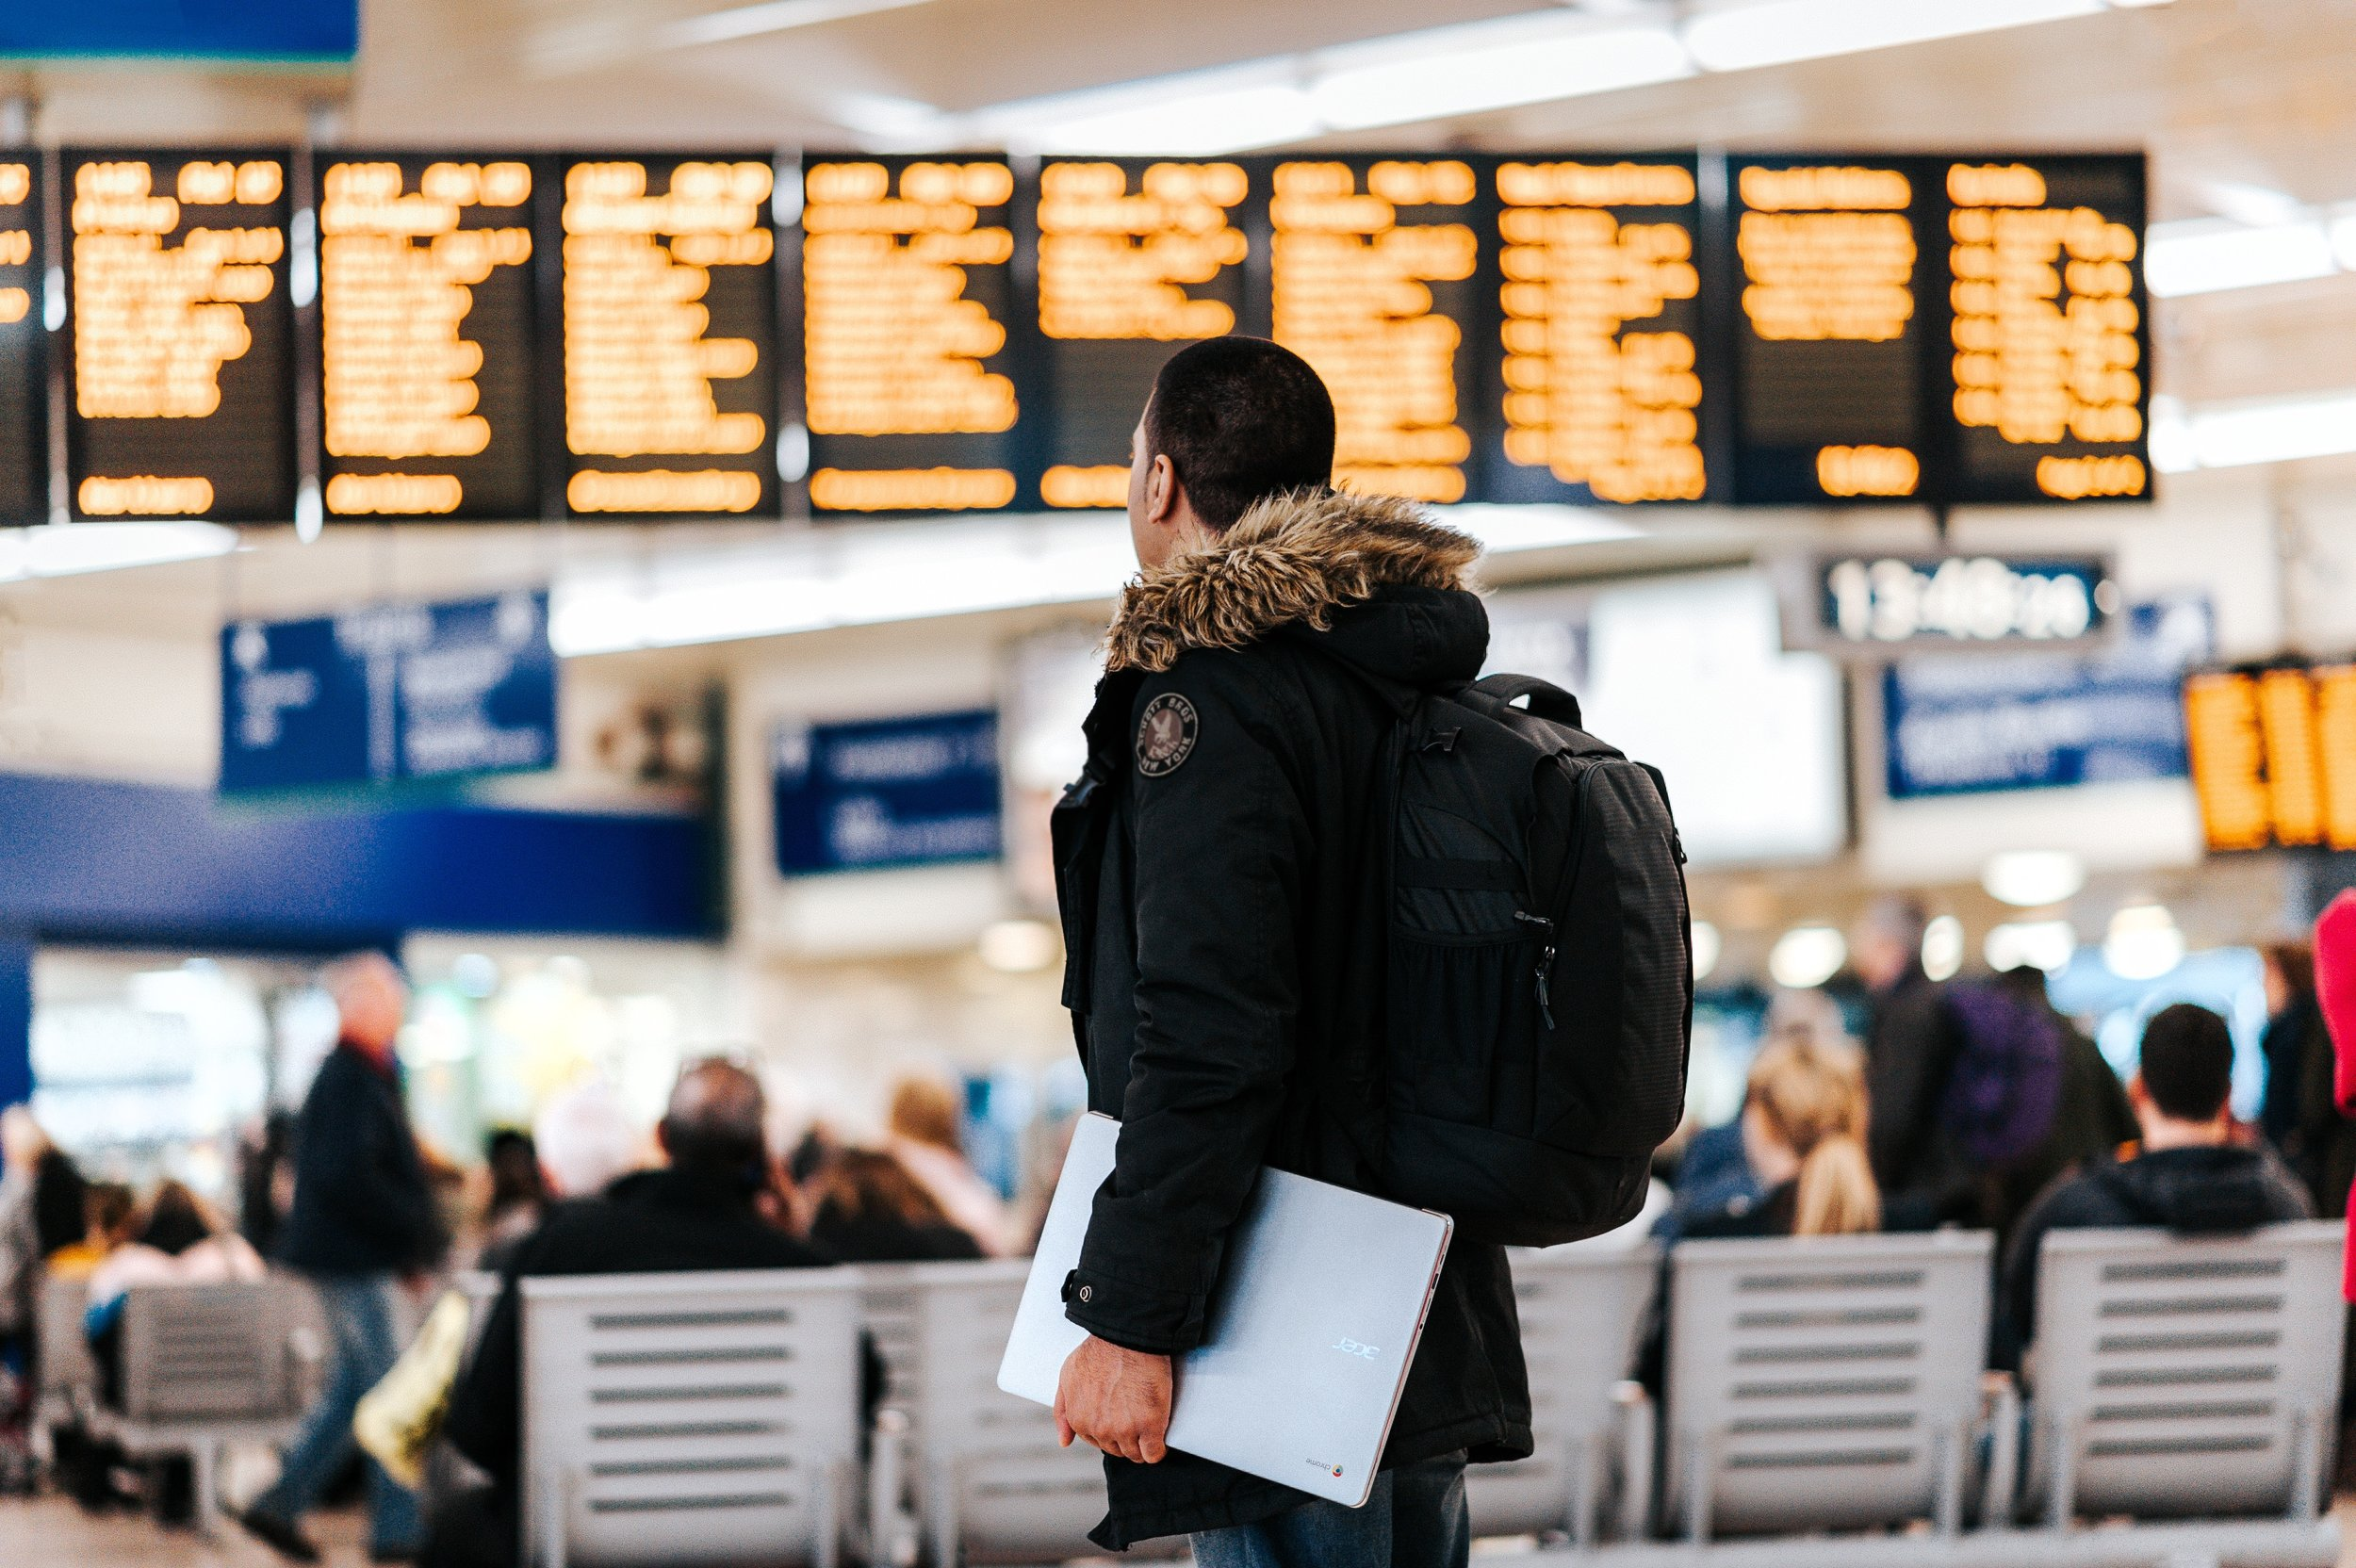 Man wearing a travel backpack in an airport.